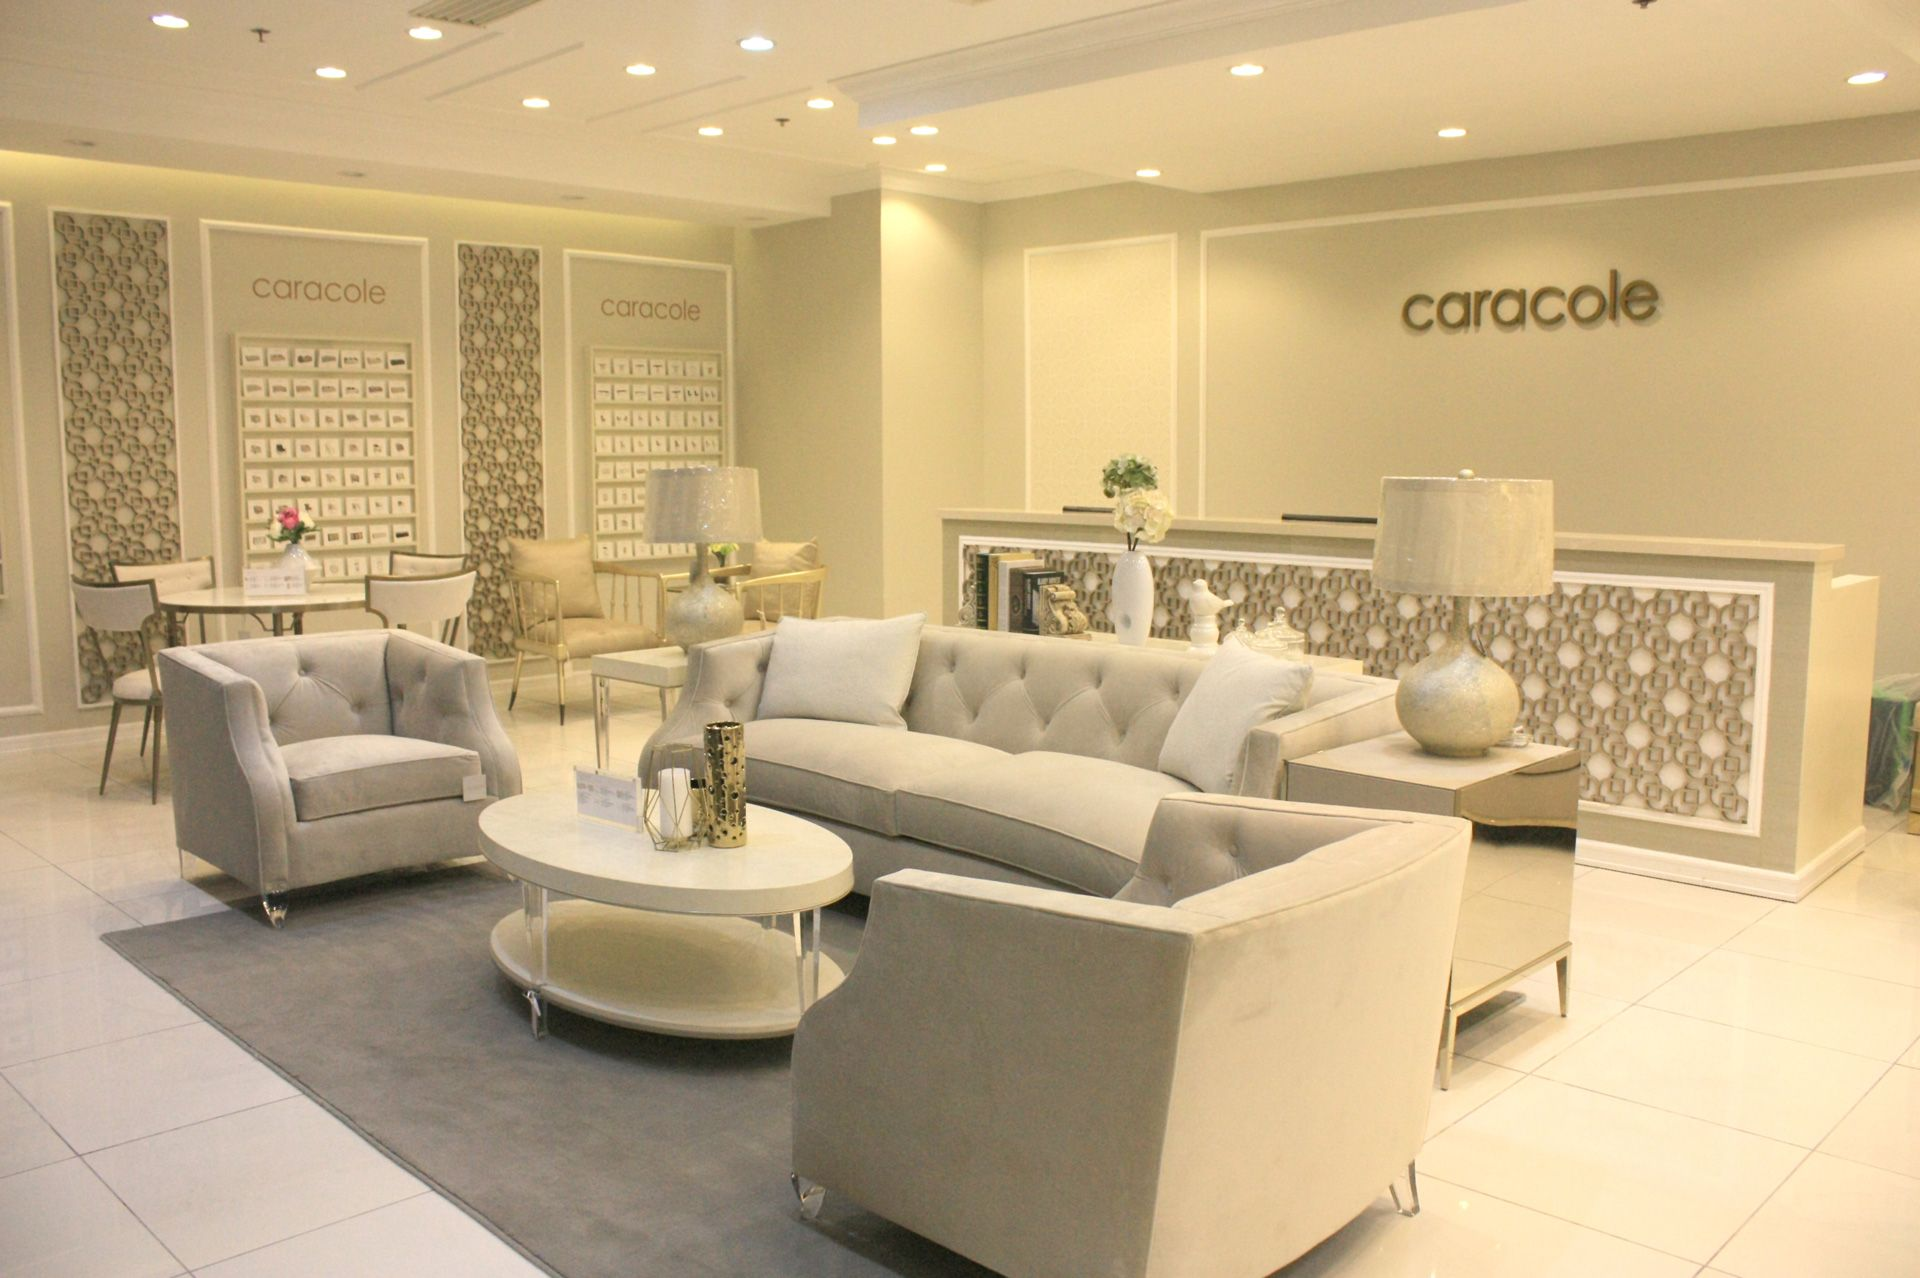 Gorgeous Finds At The New Caracole Showroom Philippine Tatler